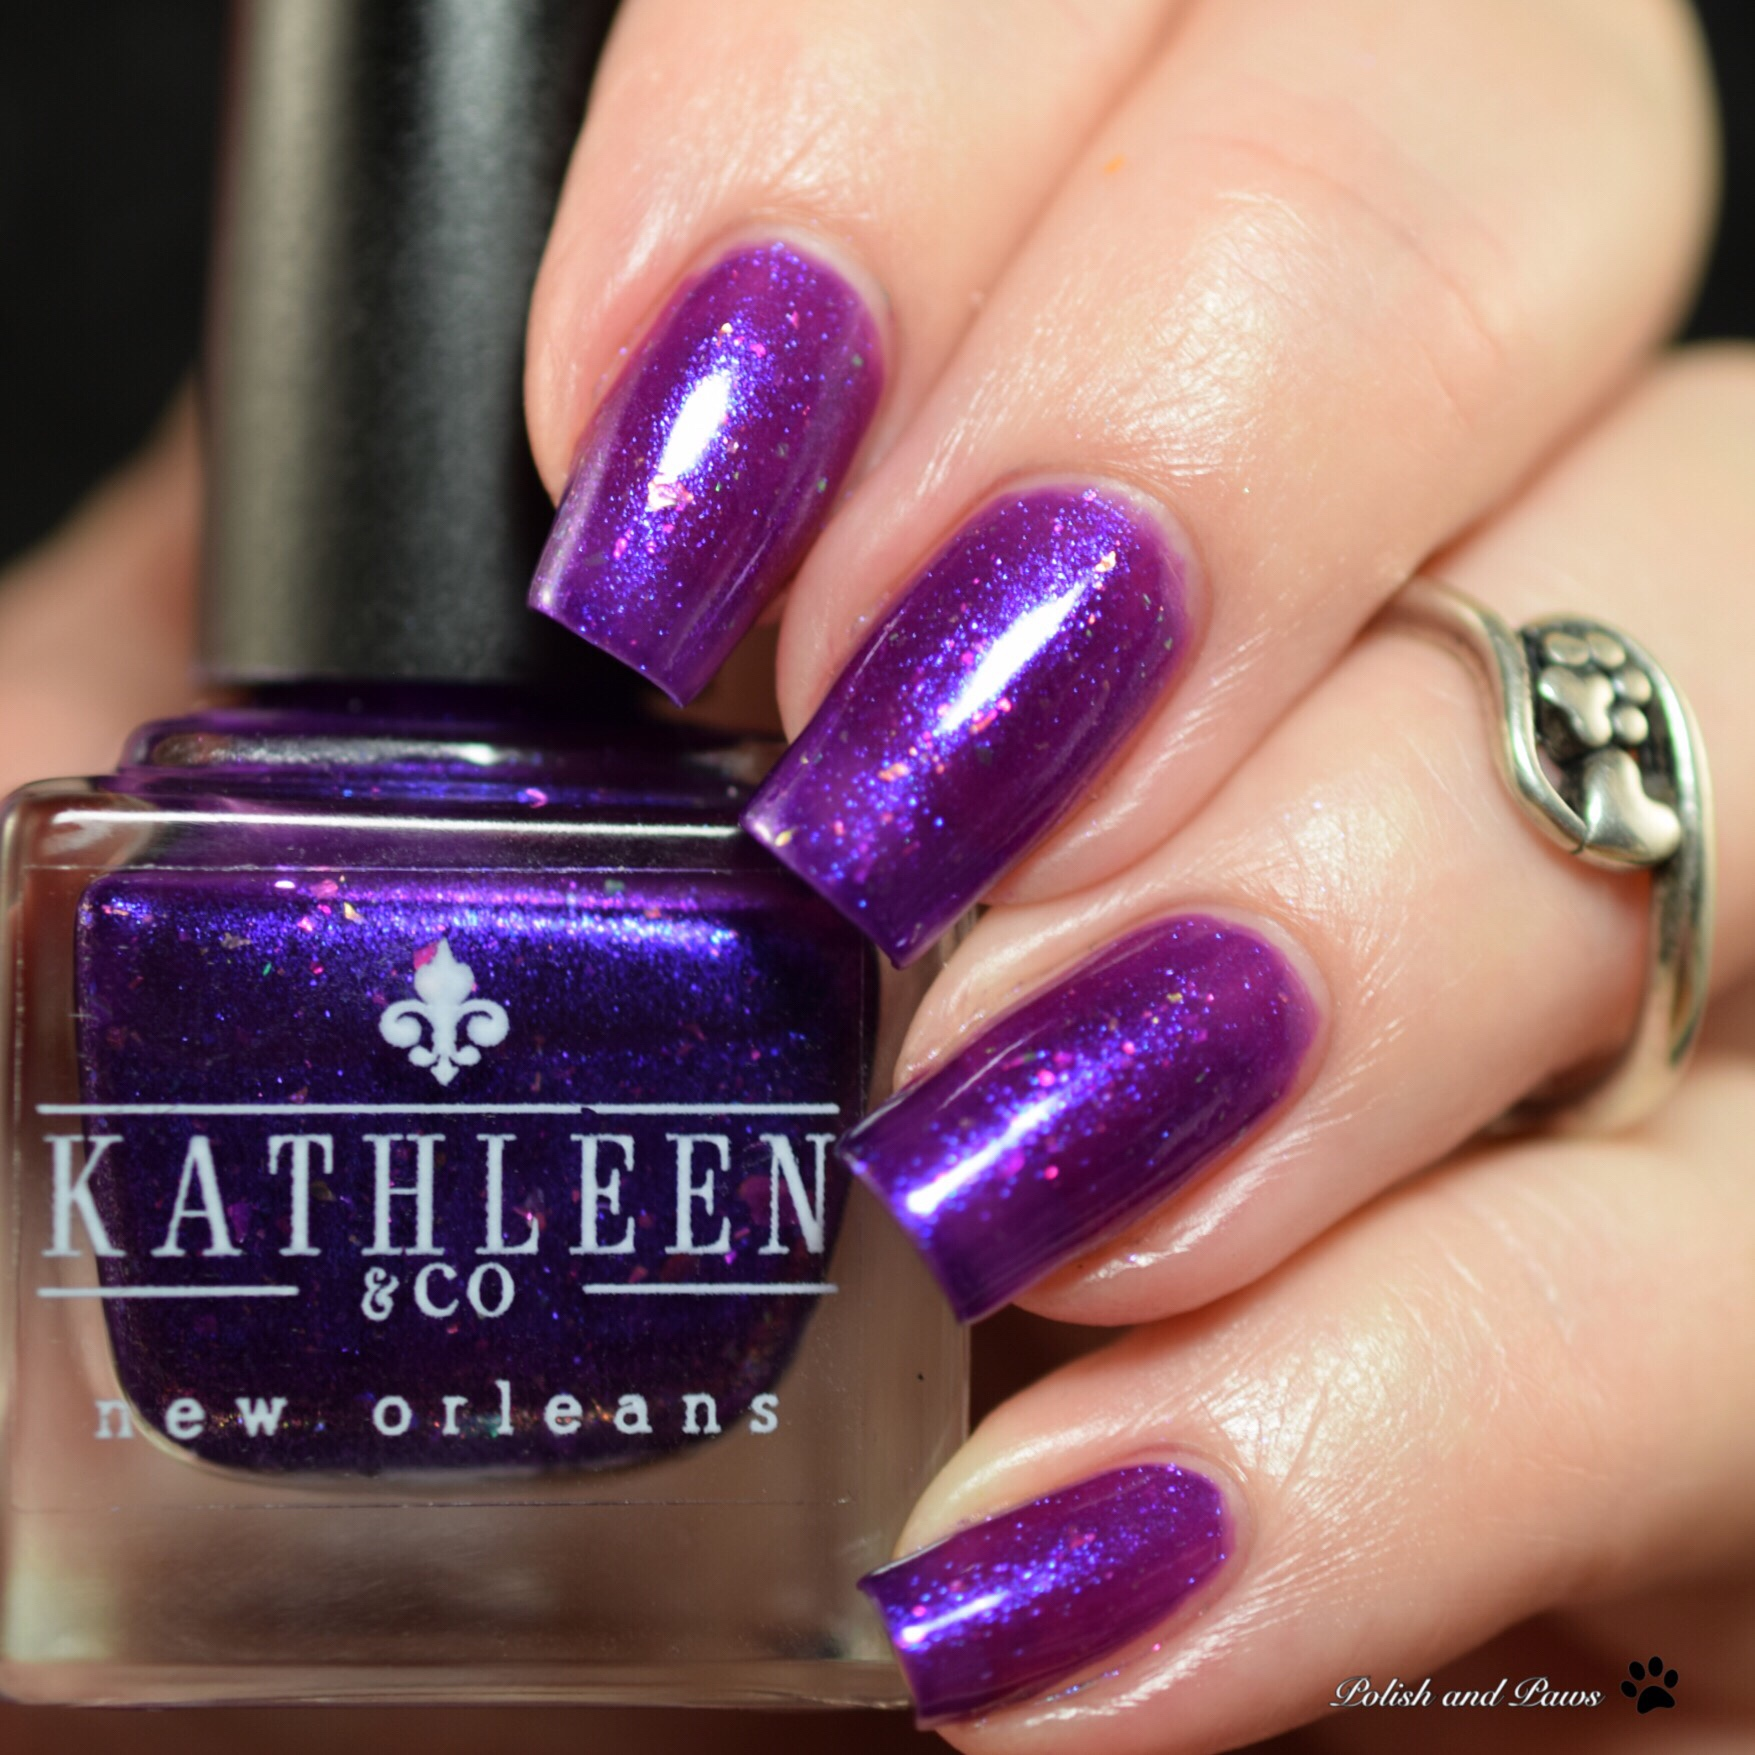 Kathleen & Co Sea Witch